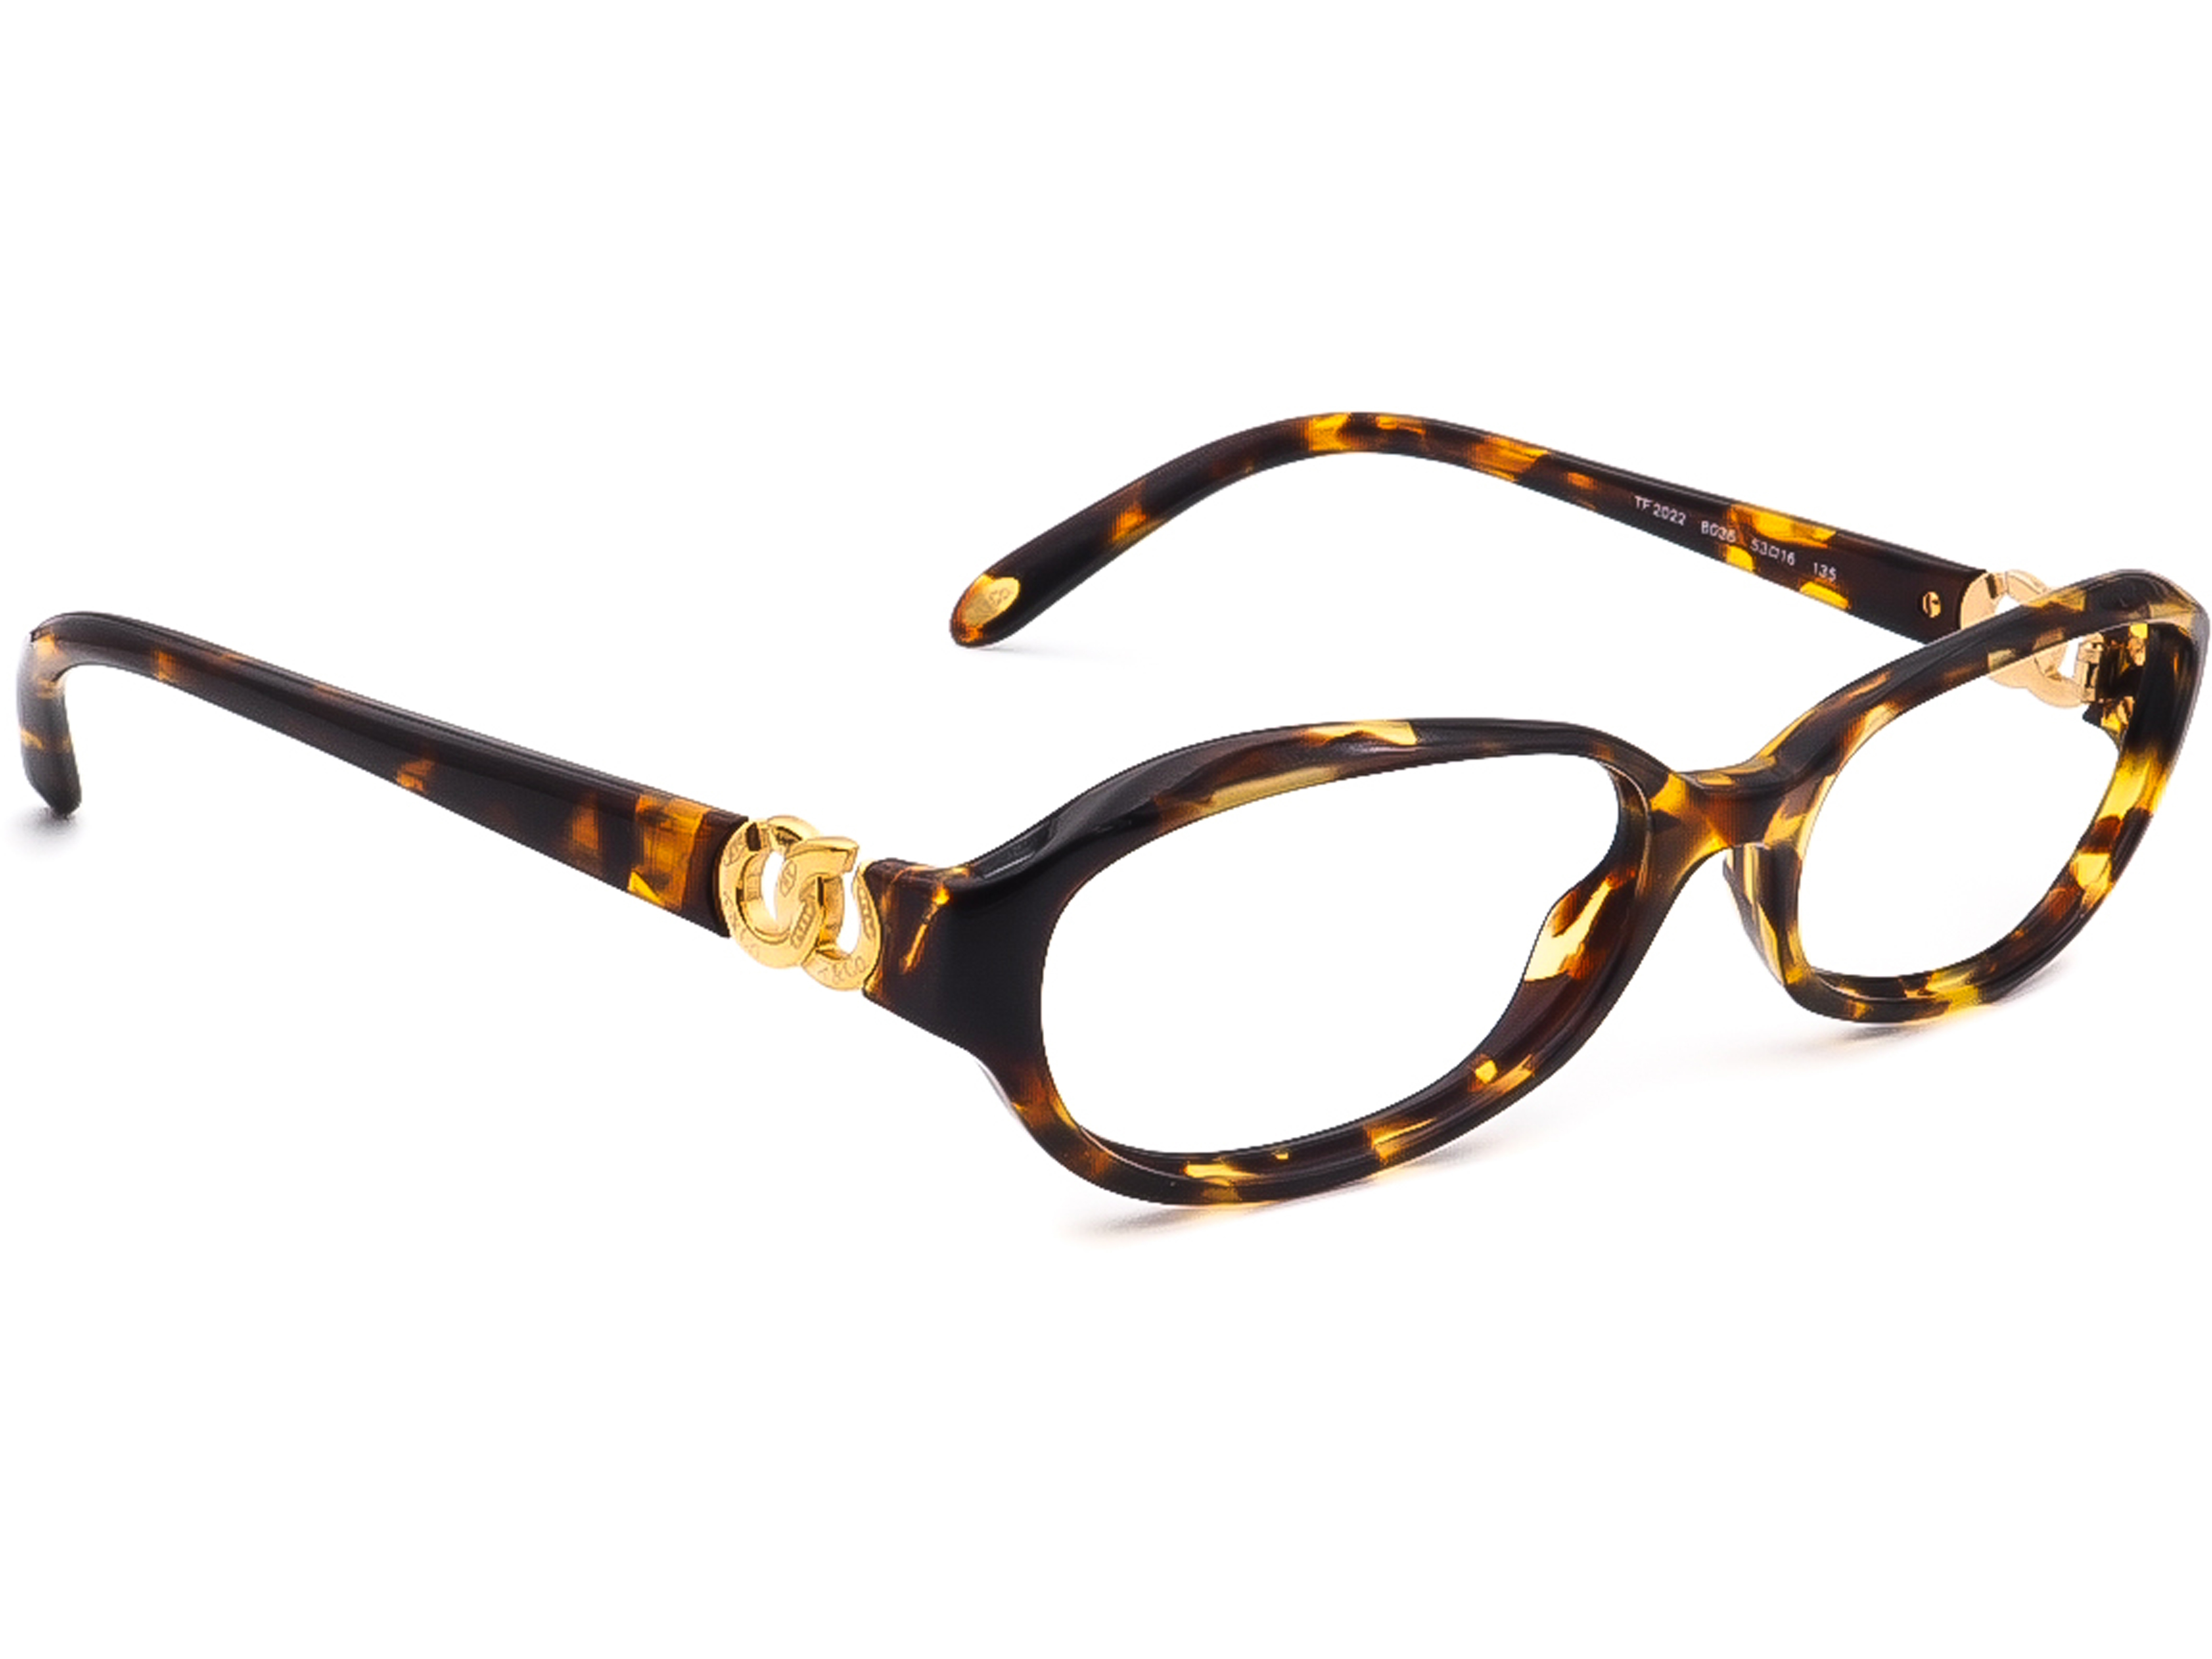 Tiffany & Co. TF 2022 8036 Eyeglasses